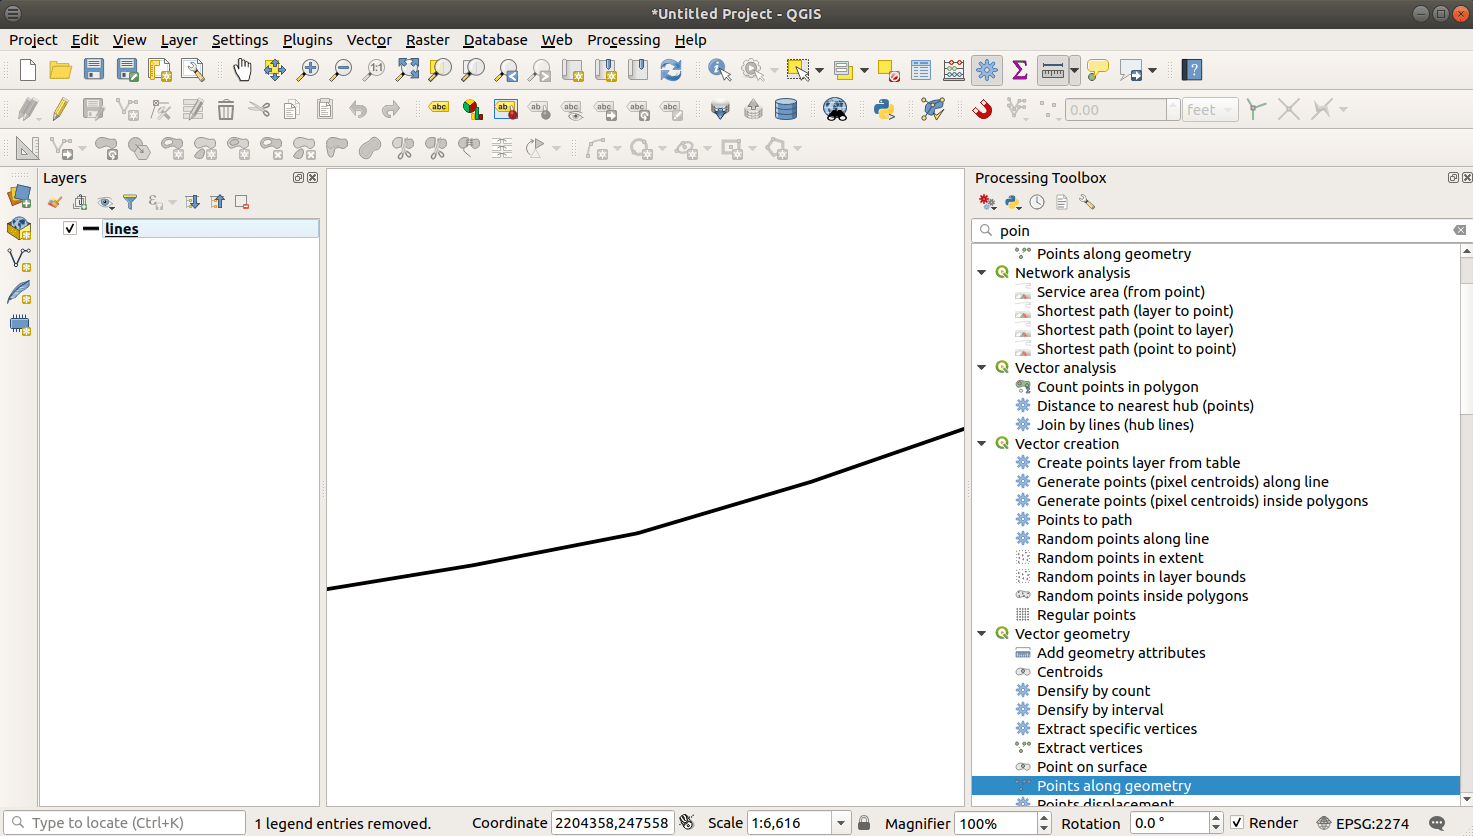 QGIS: Points along a line • North River Geographic Systems Inc